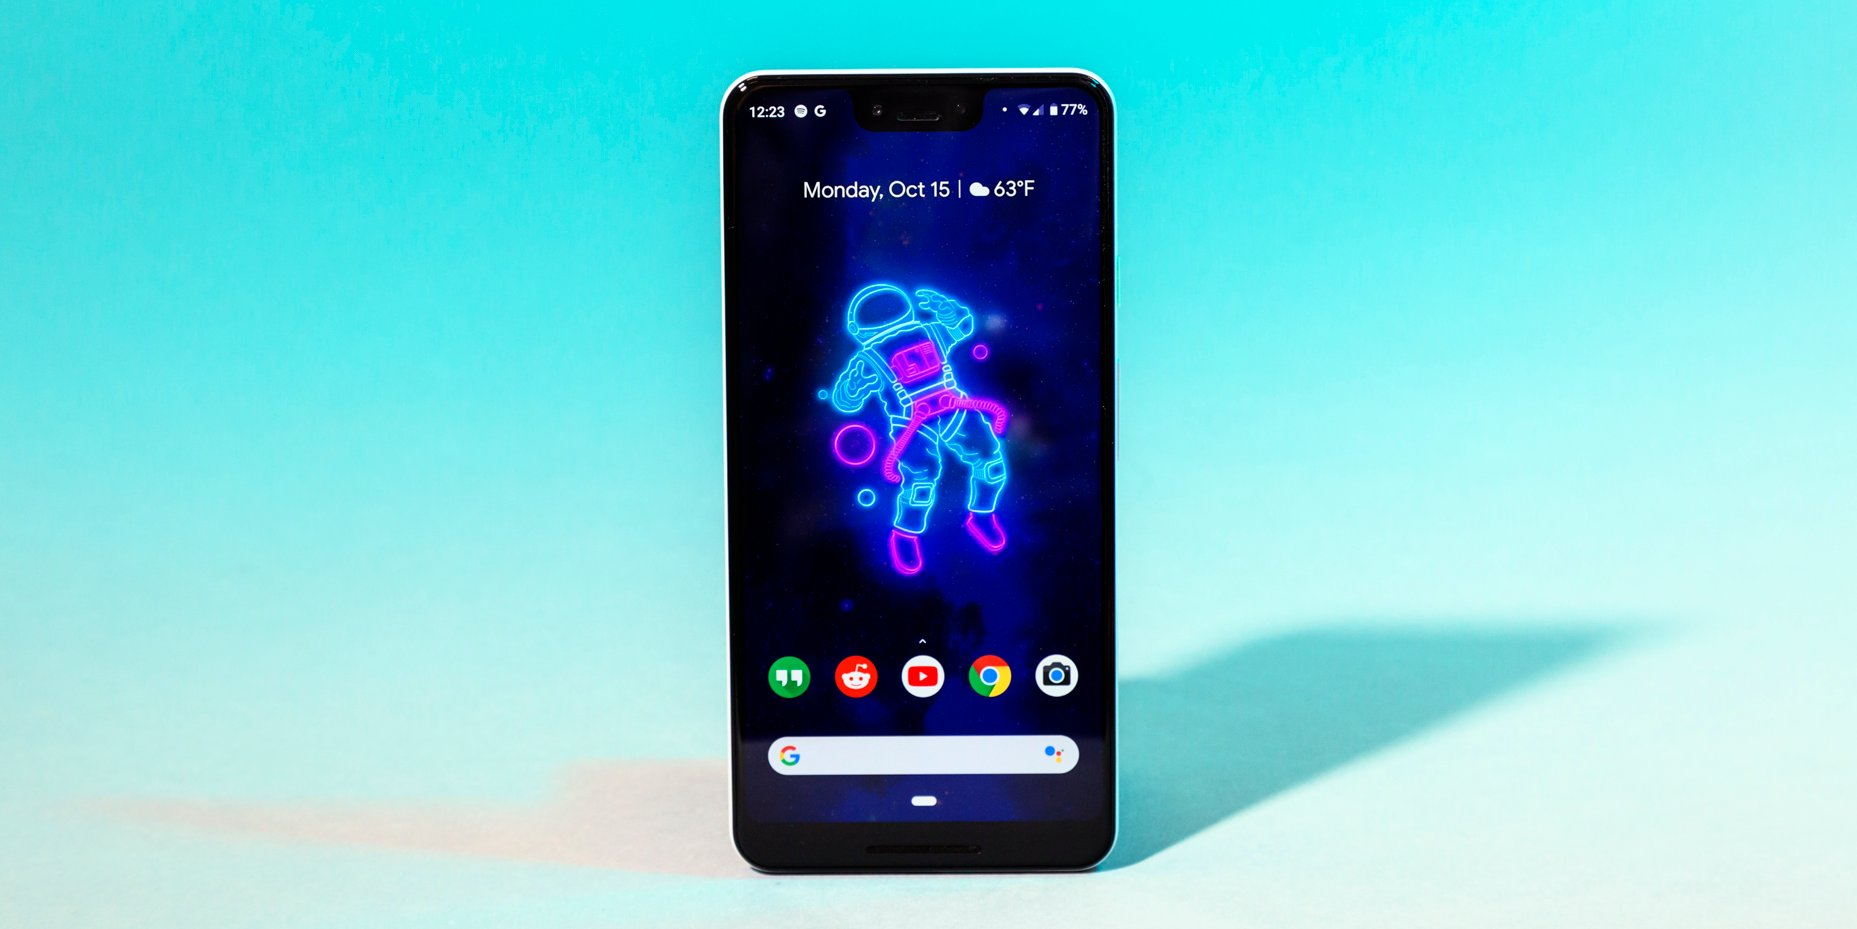 It has just been revealed that the Pixel 3 XL display is made by the technology giant Samsung – did you see this coming?